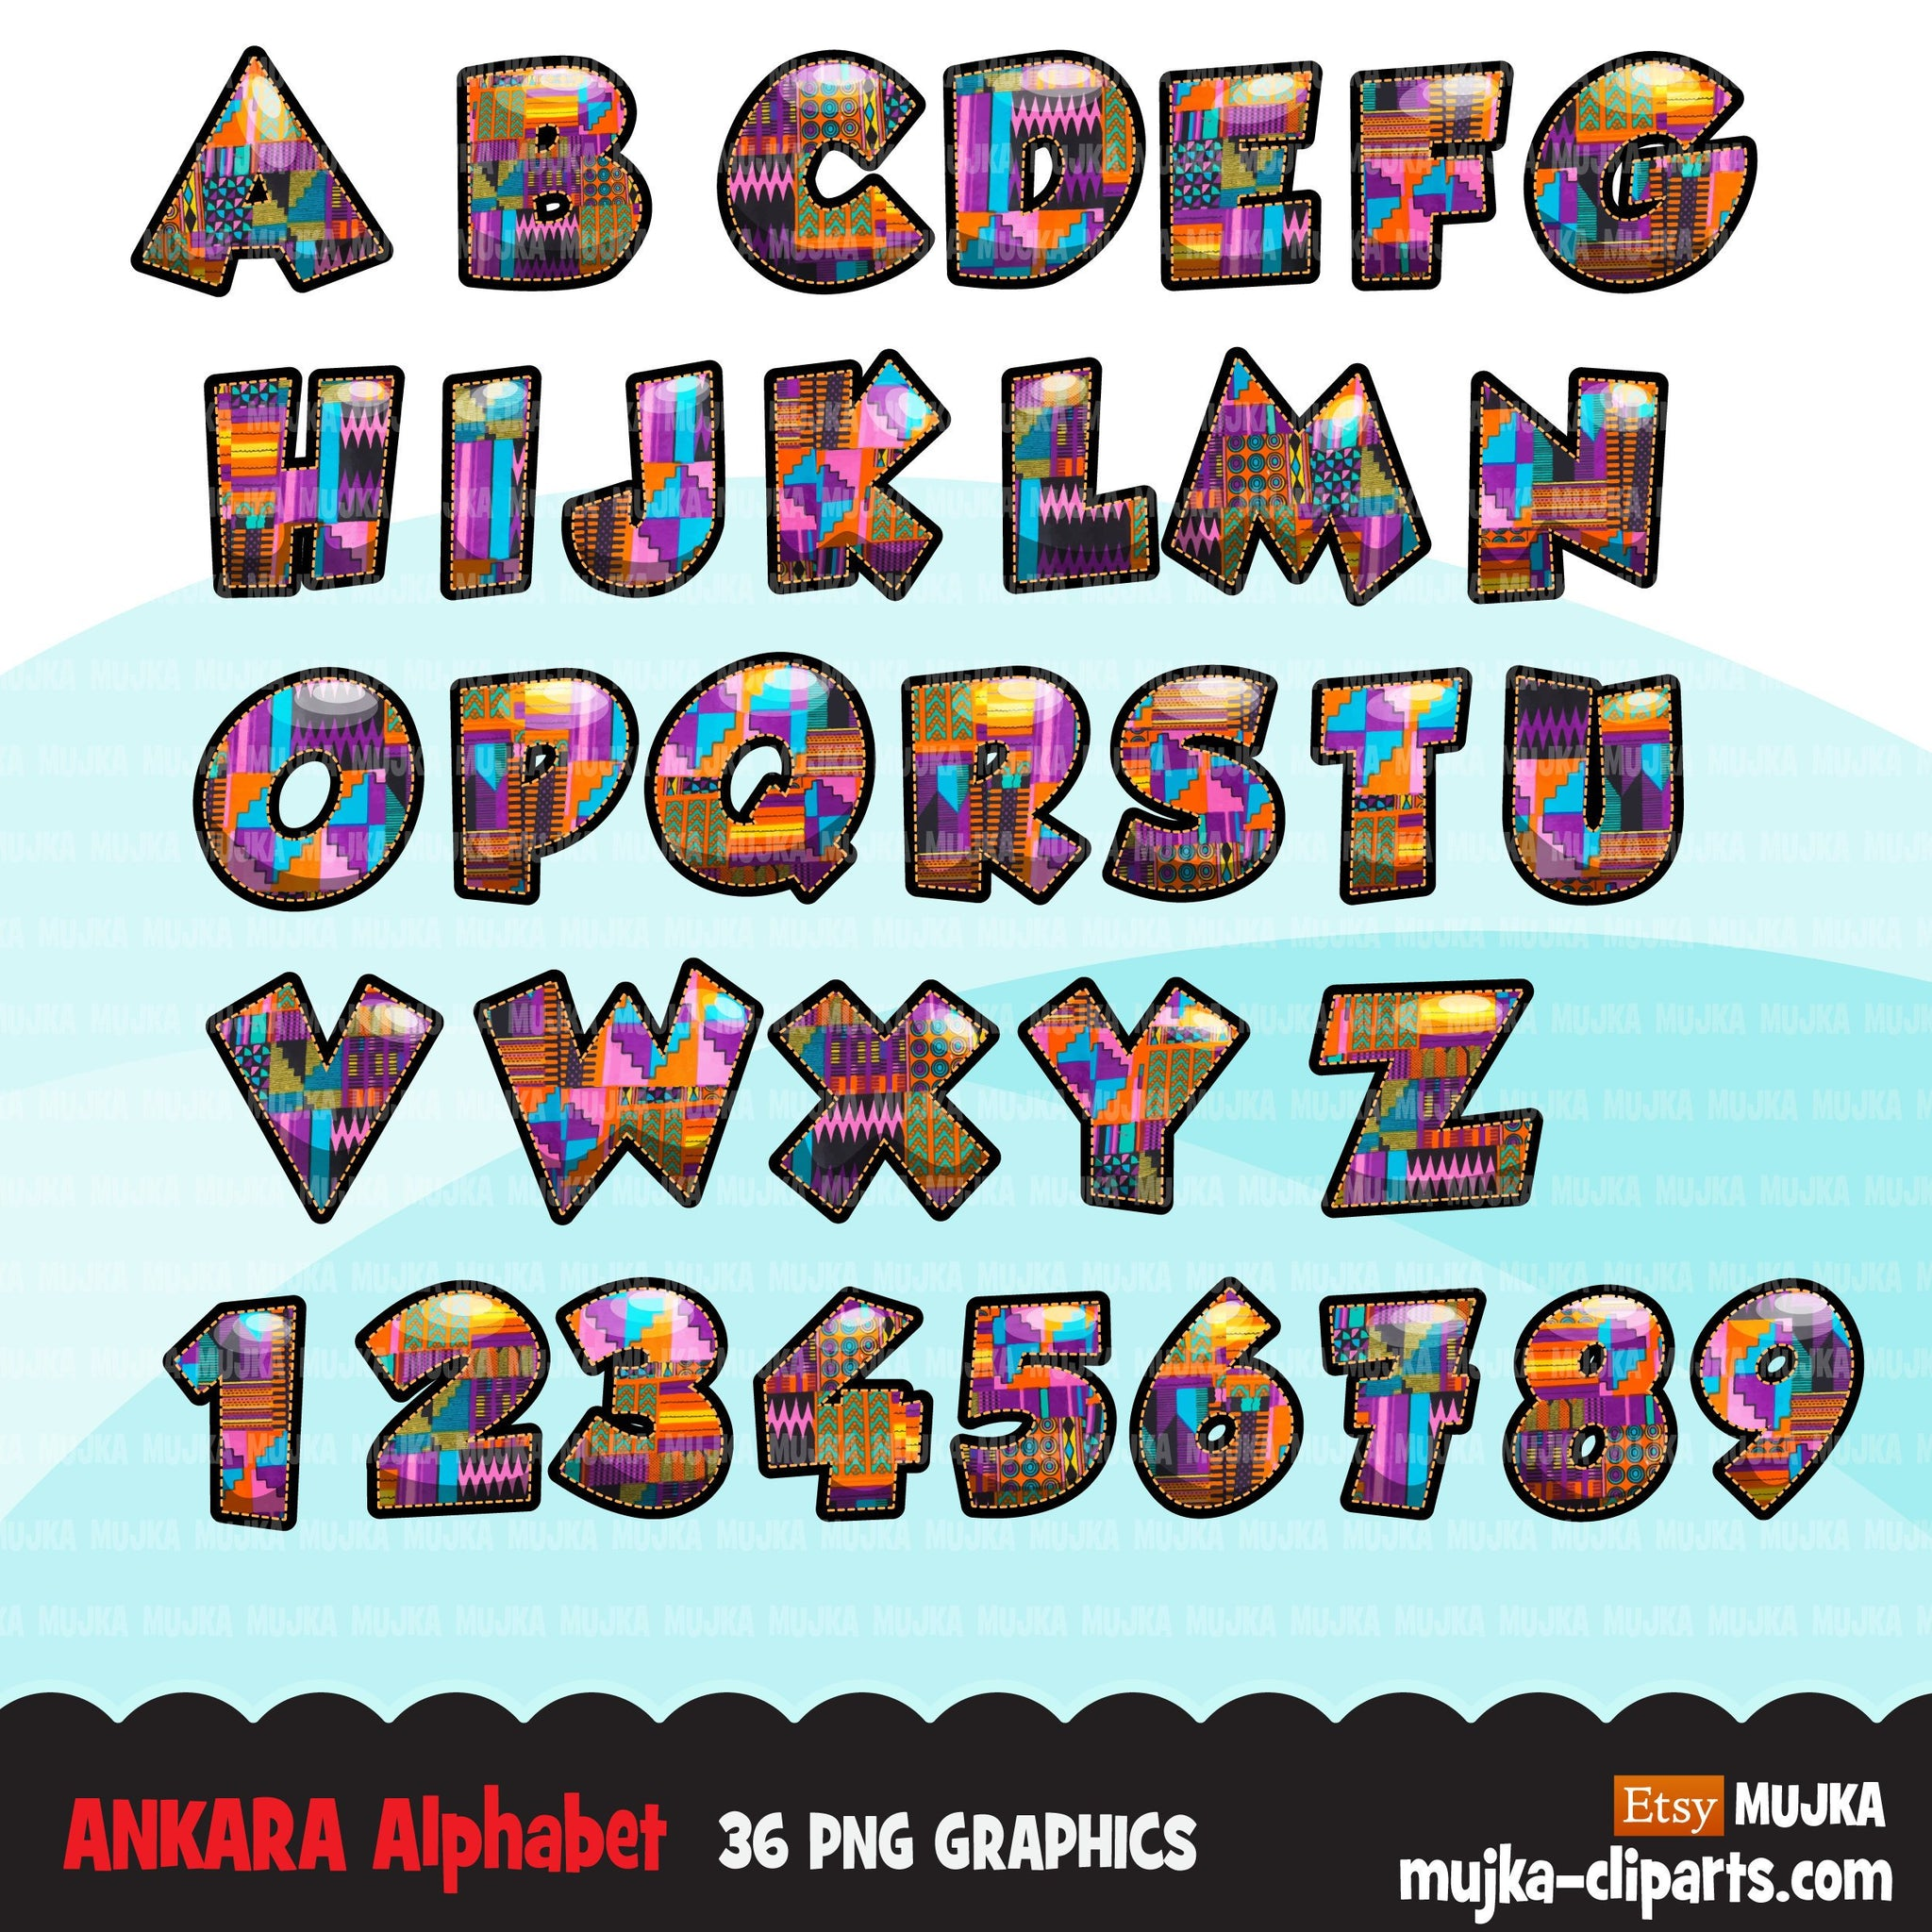 Ankara African Alphabet Clipart, stackable, black history letters, Kwanzaa clipart, kente fabric letters & numbers, PNG graphics